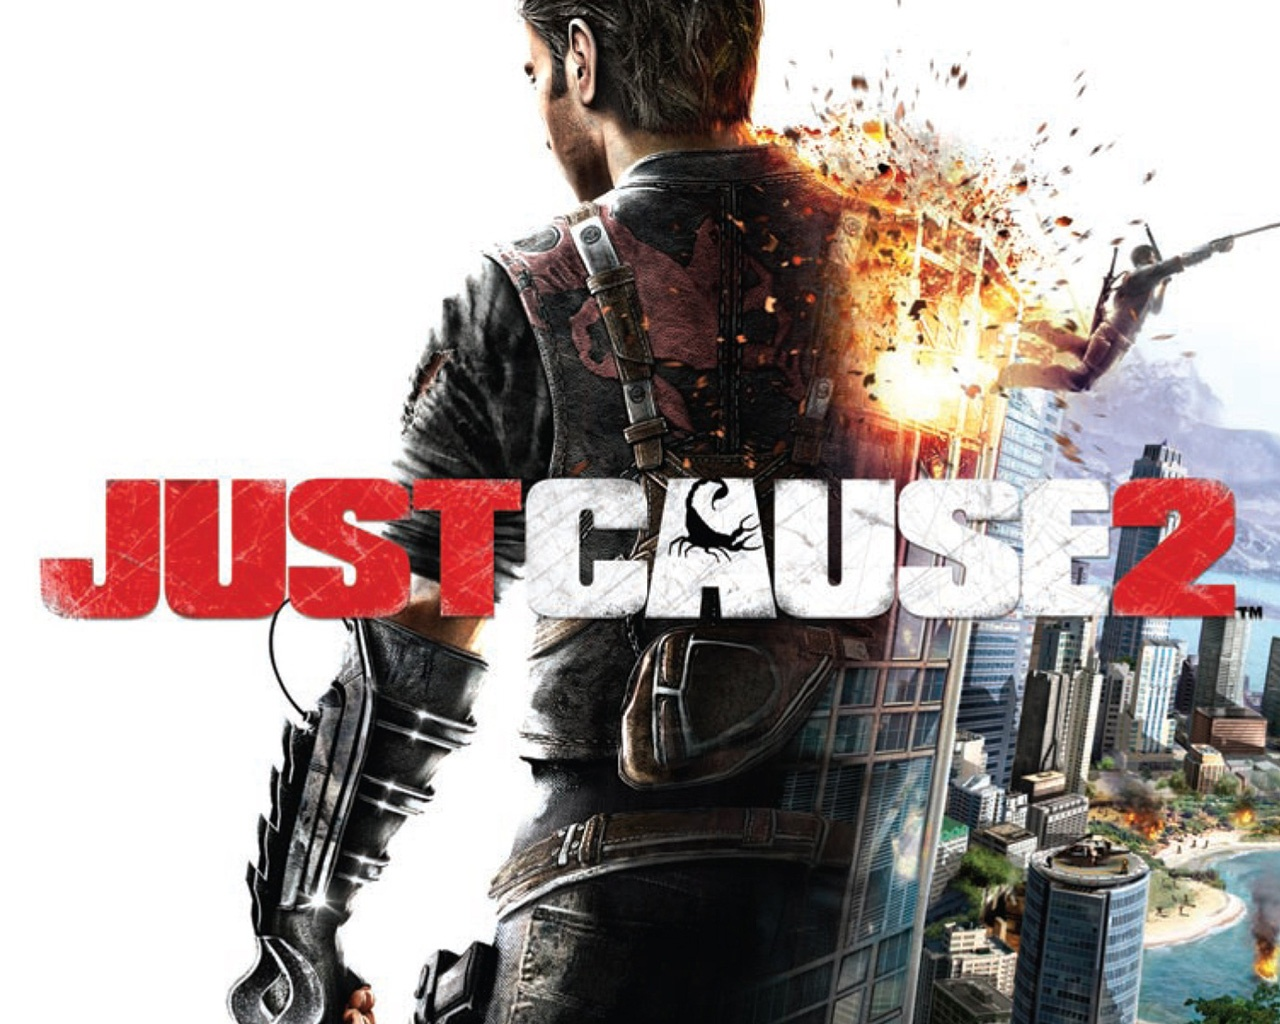 Just Cause 2 PS3 Game Wallpapers in jpg format for free download